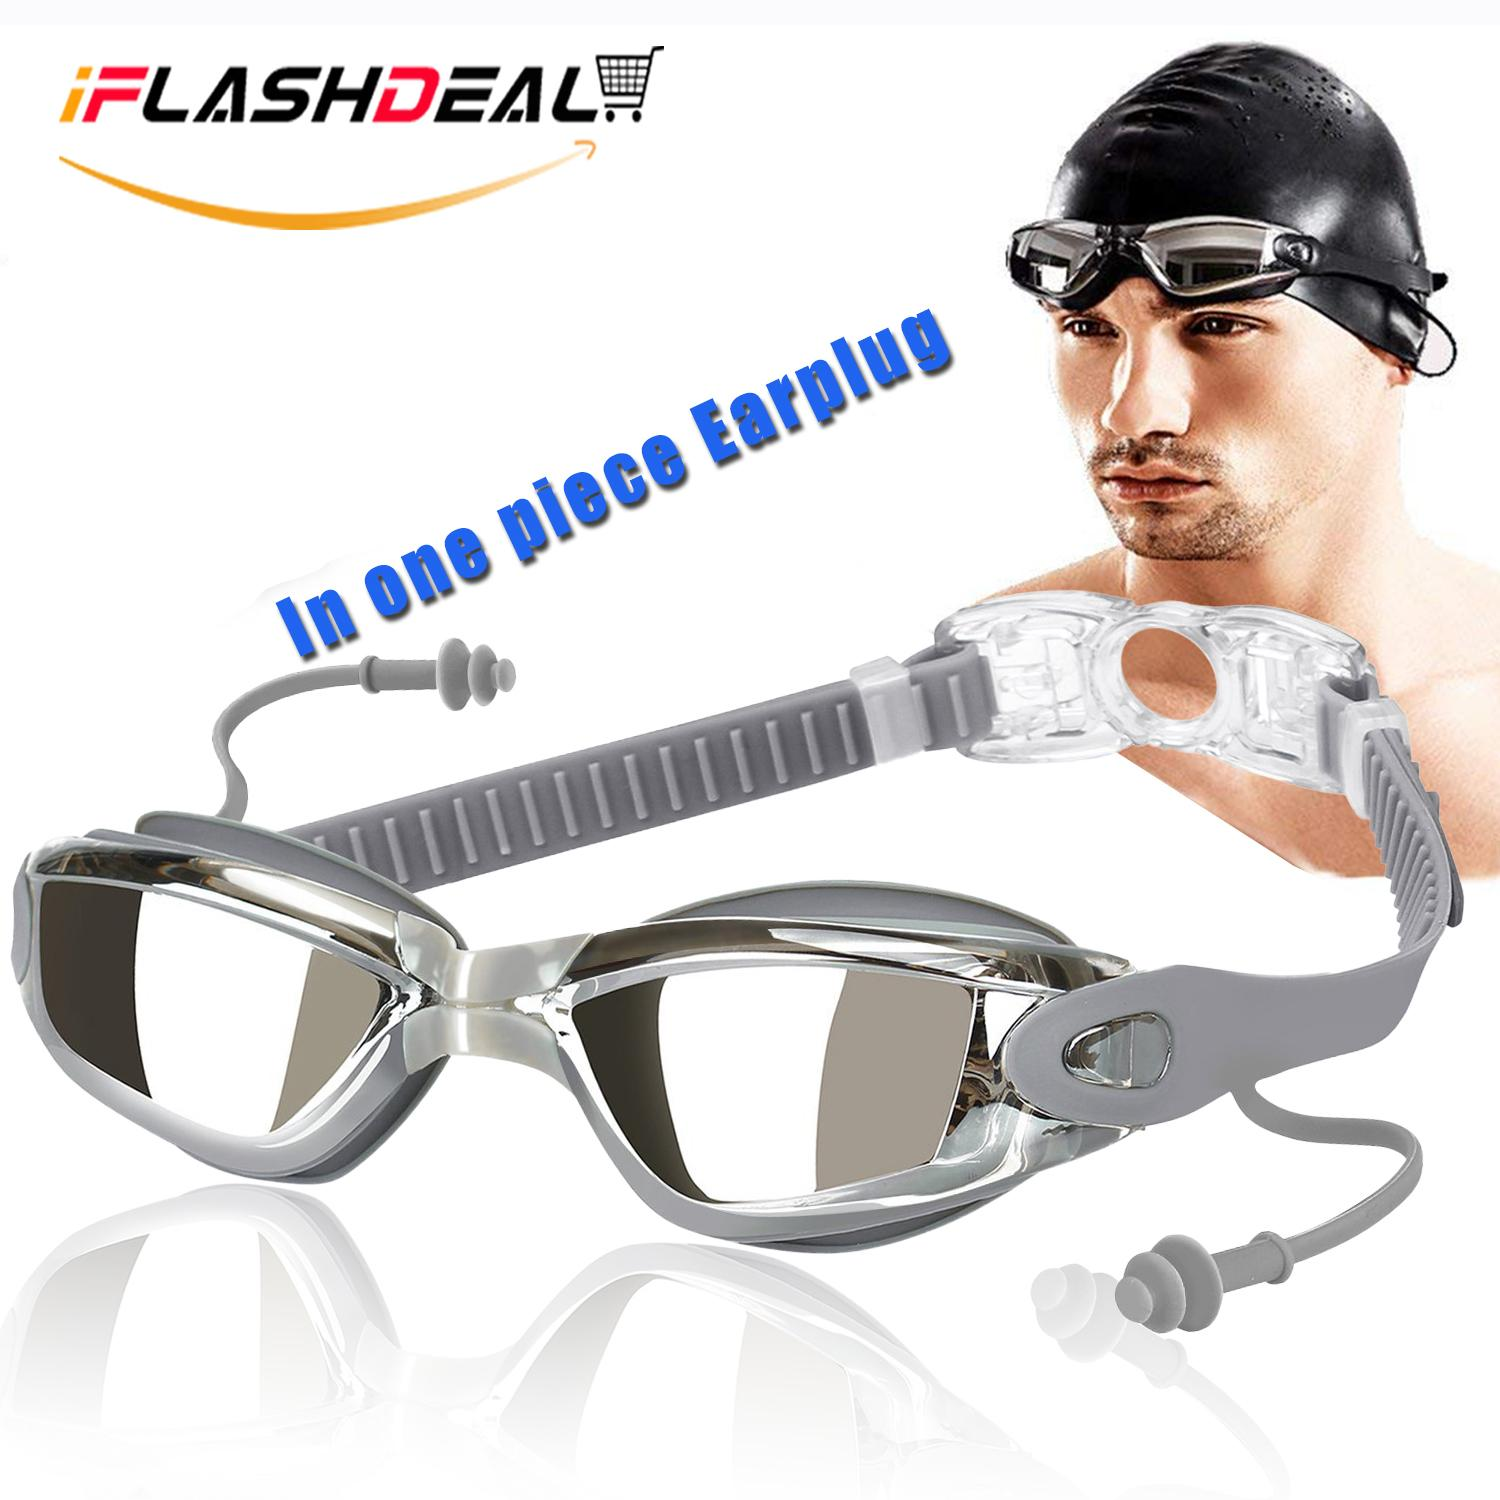 175d805b08 iFlashDeal Swimming Goggles Swim Goggles for Adult Men Women Youth Kids  Child Mirrored   Clear Anti